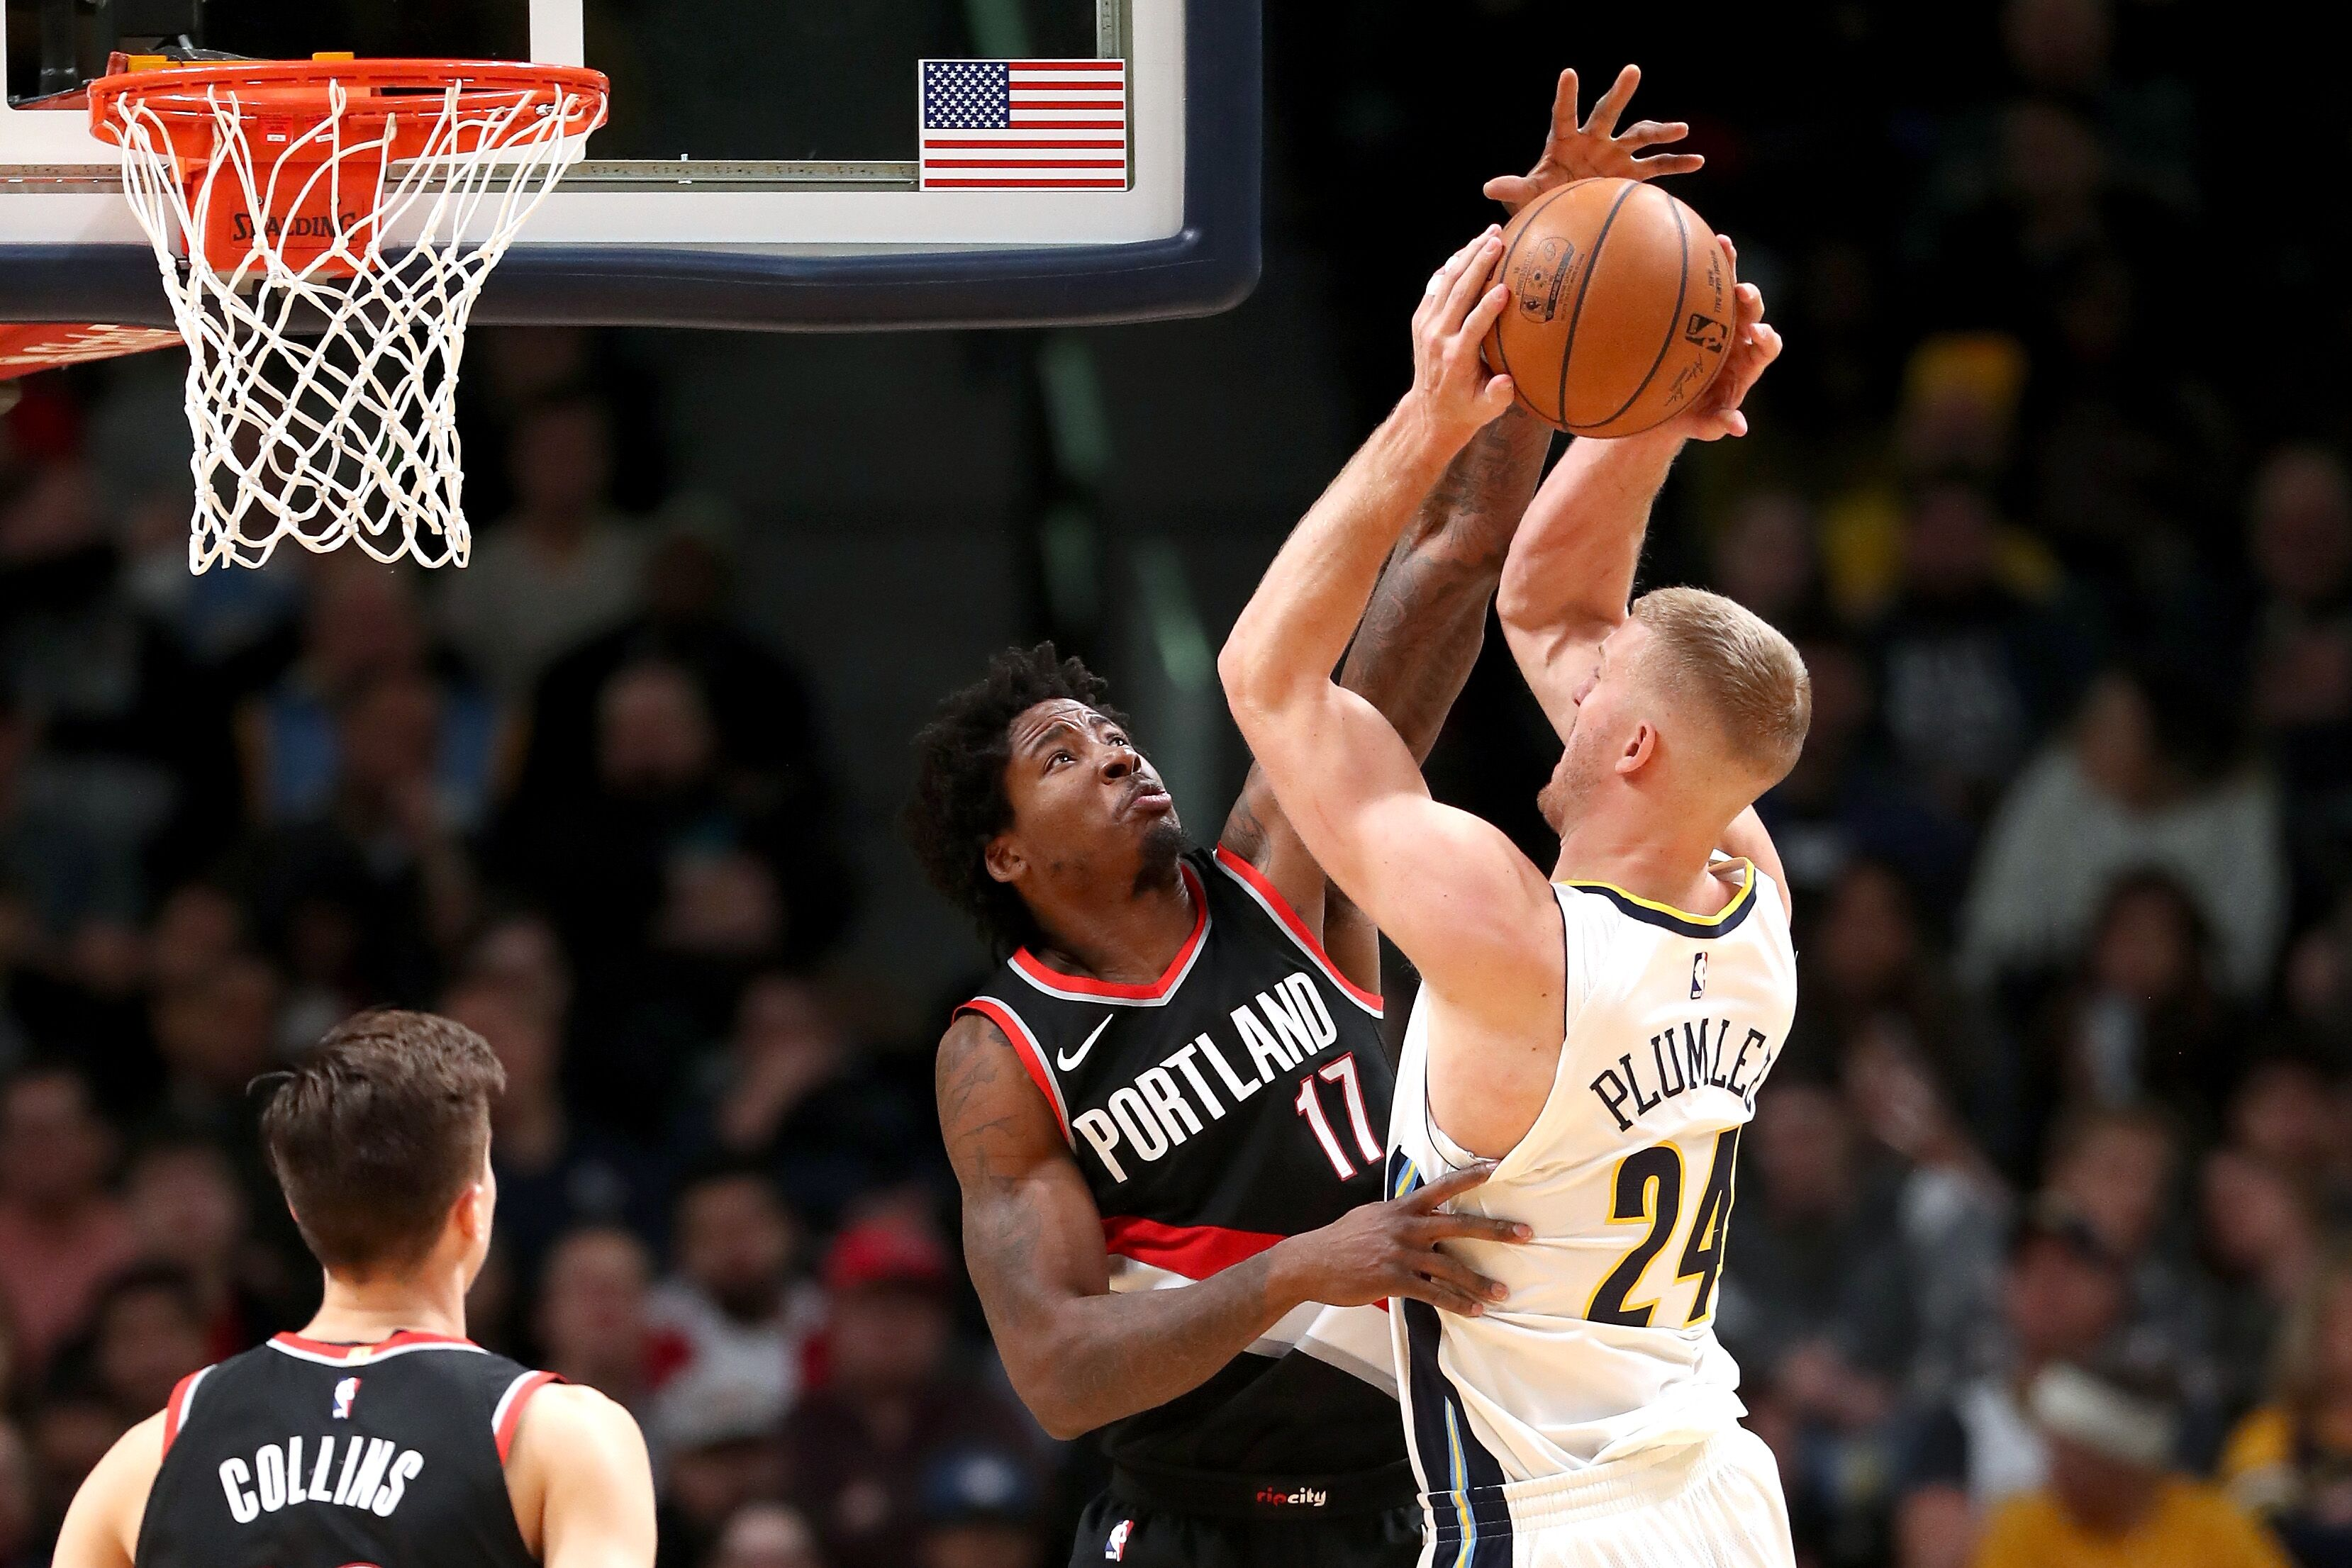 247ebf3e9 Denver Nuggets at Blazers  What to watch for in Portland